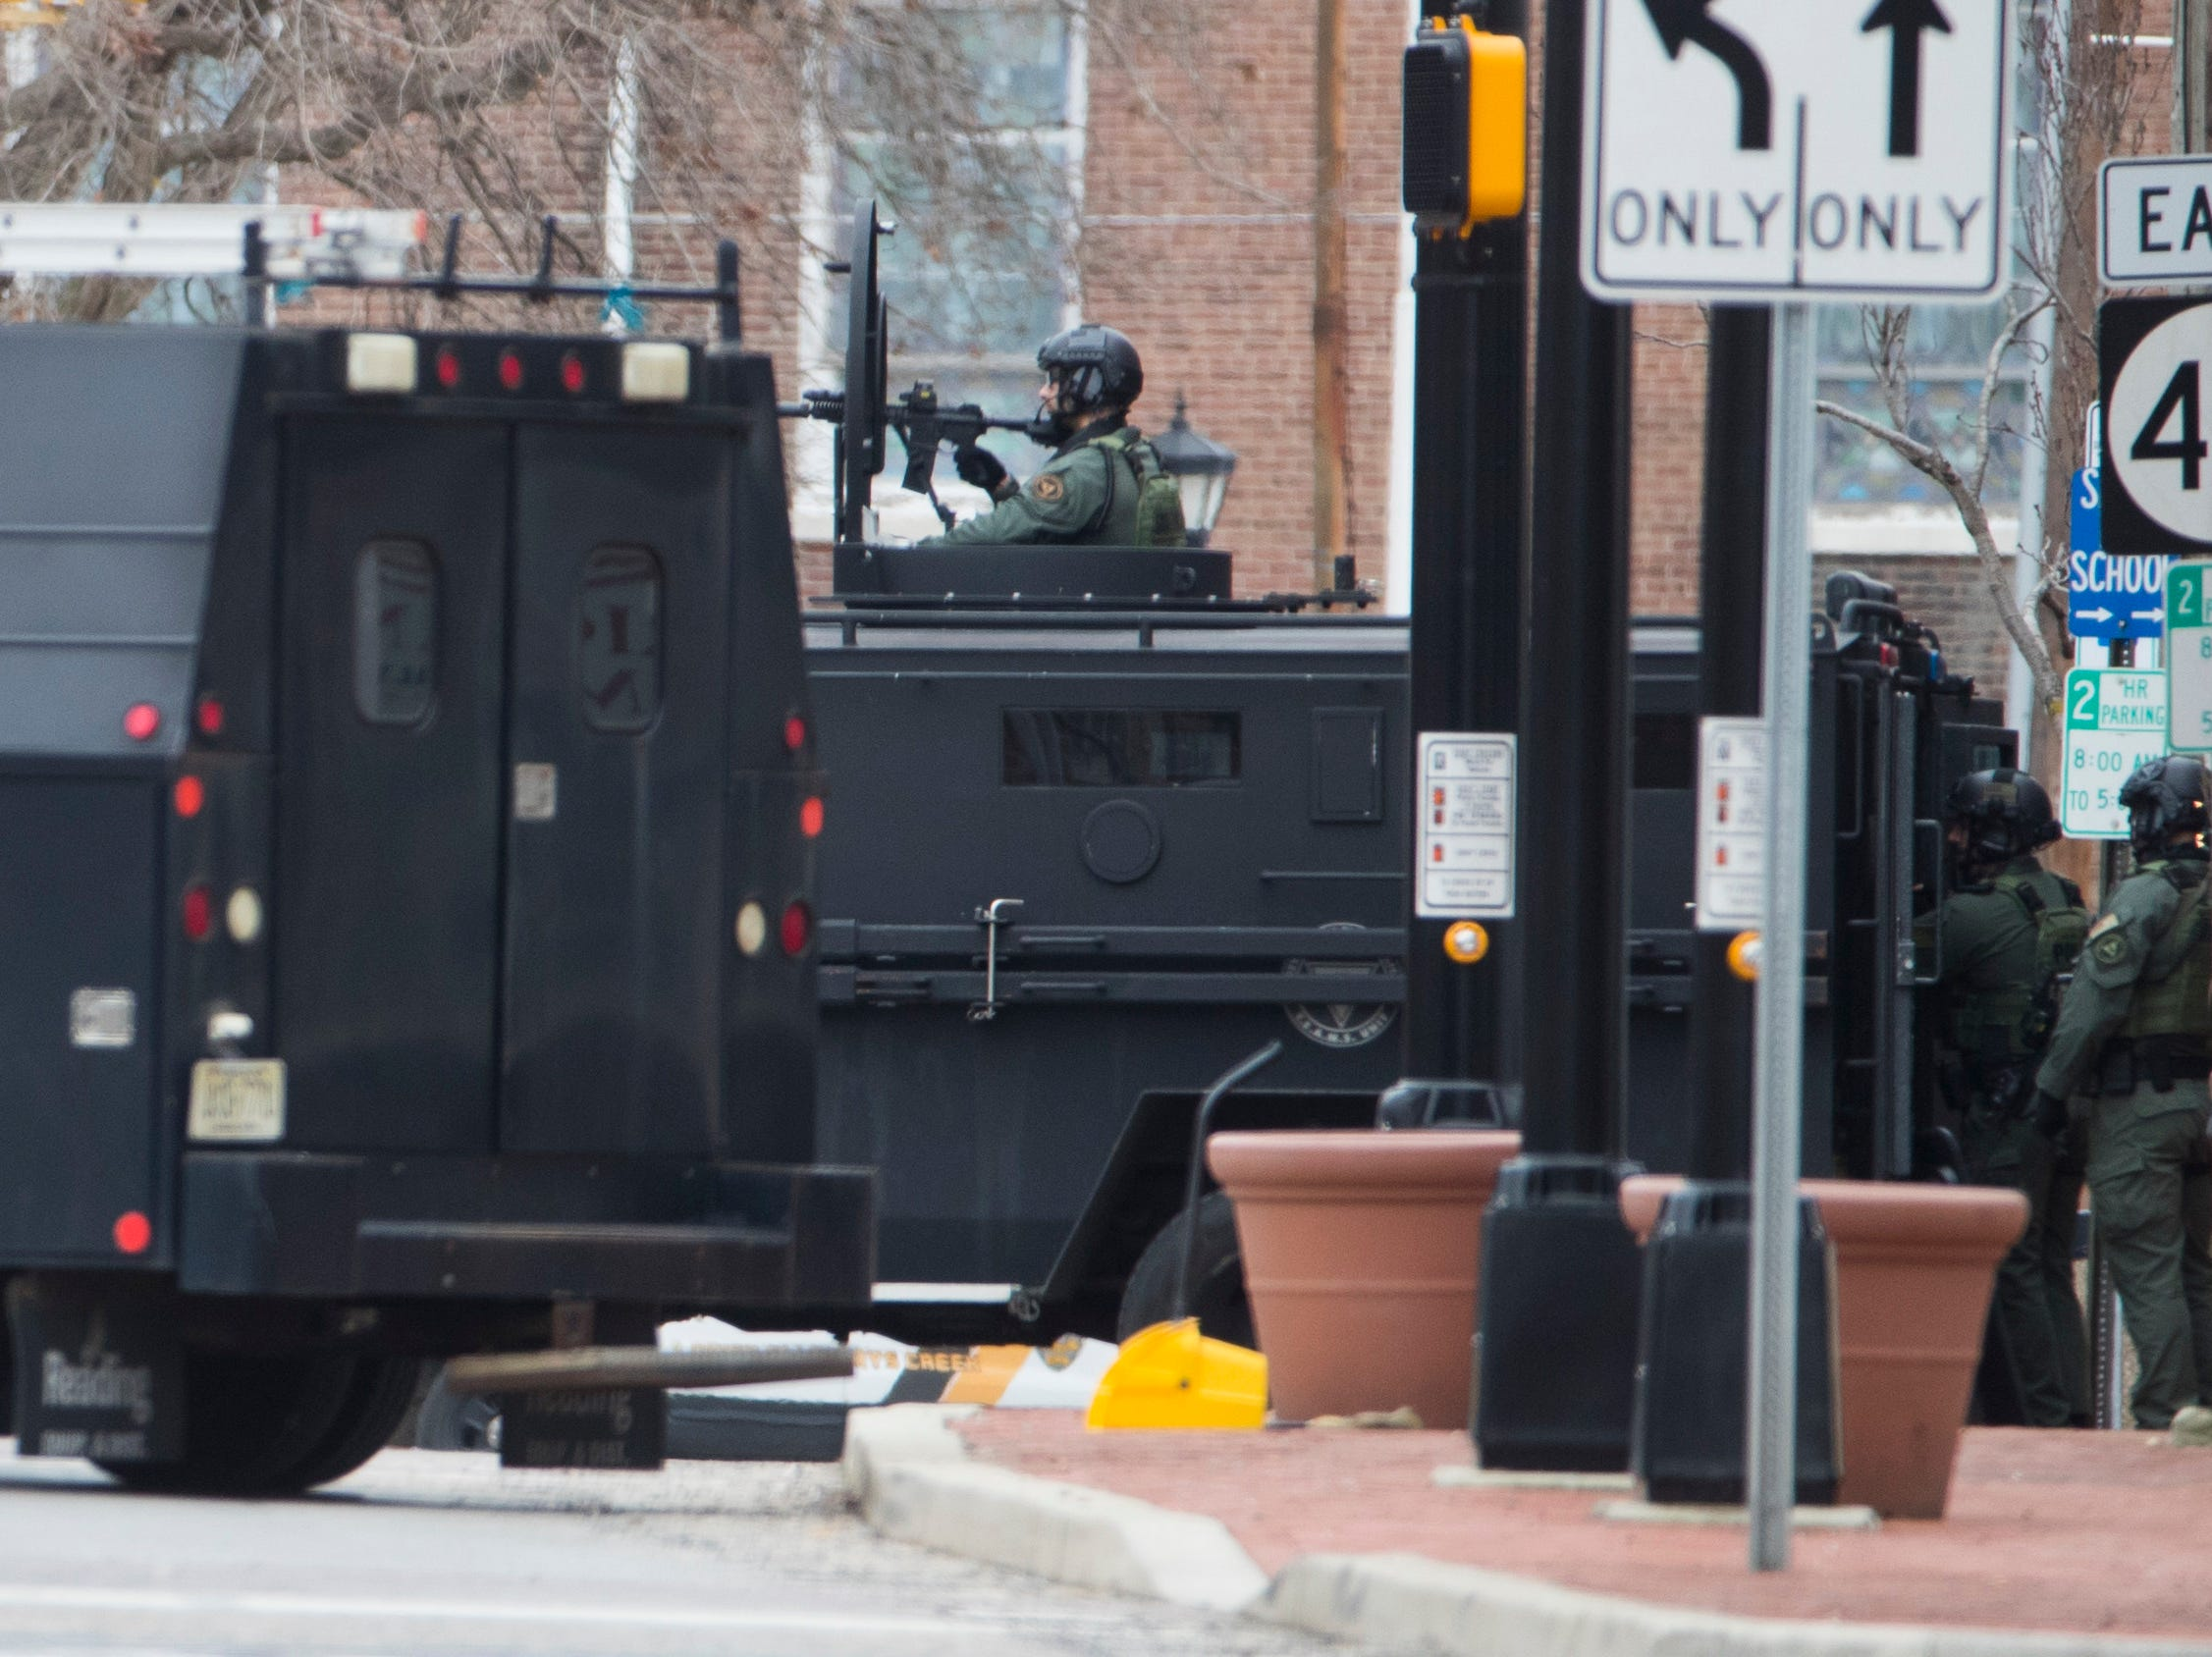 Police on scene at a an active shooter scene that lead to a standoff with law enforcement on the 100 block of East Broadway Street in Salem, N.J. Wednesday Jan. 23, 2019. The suspect was arrested